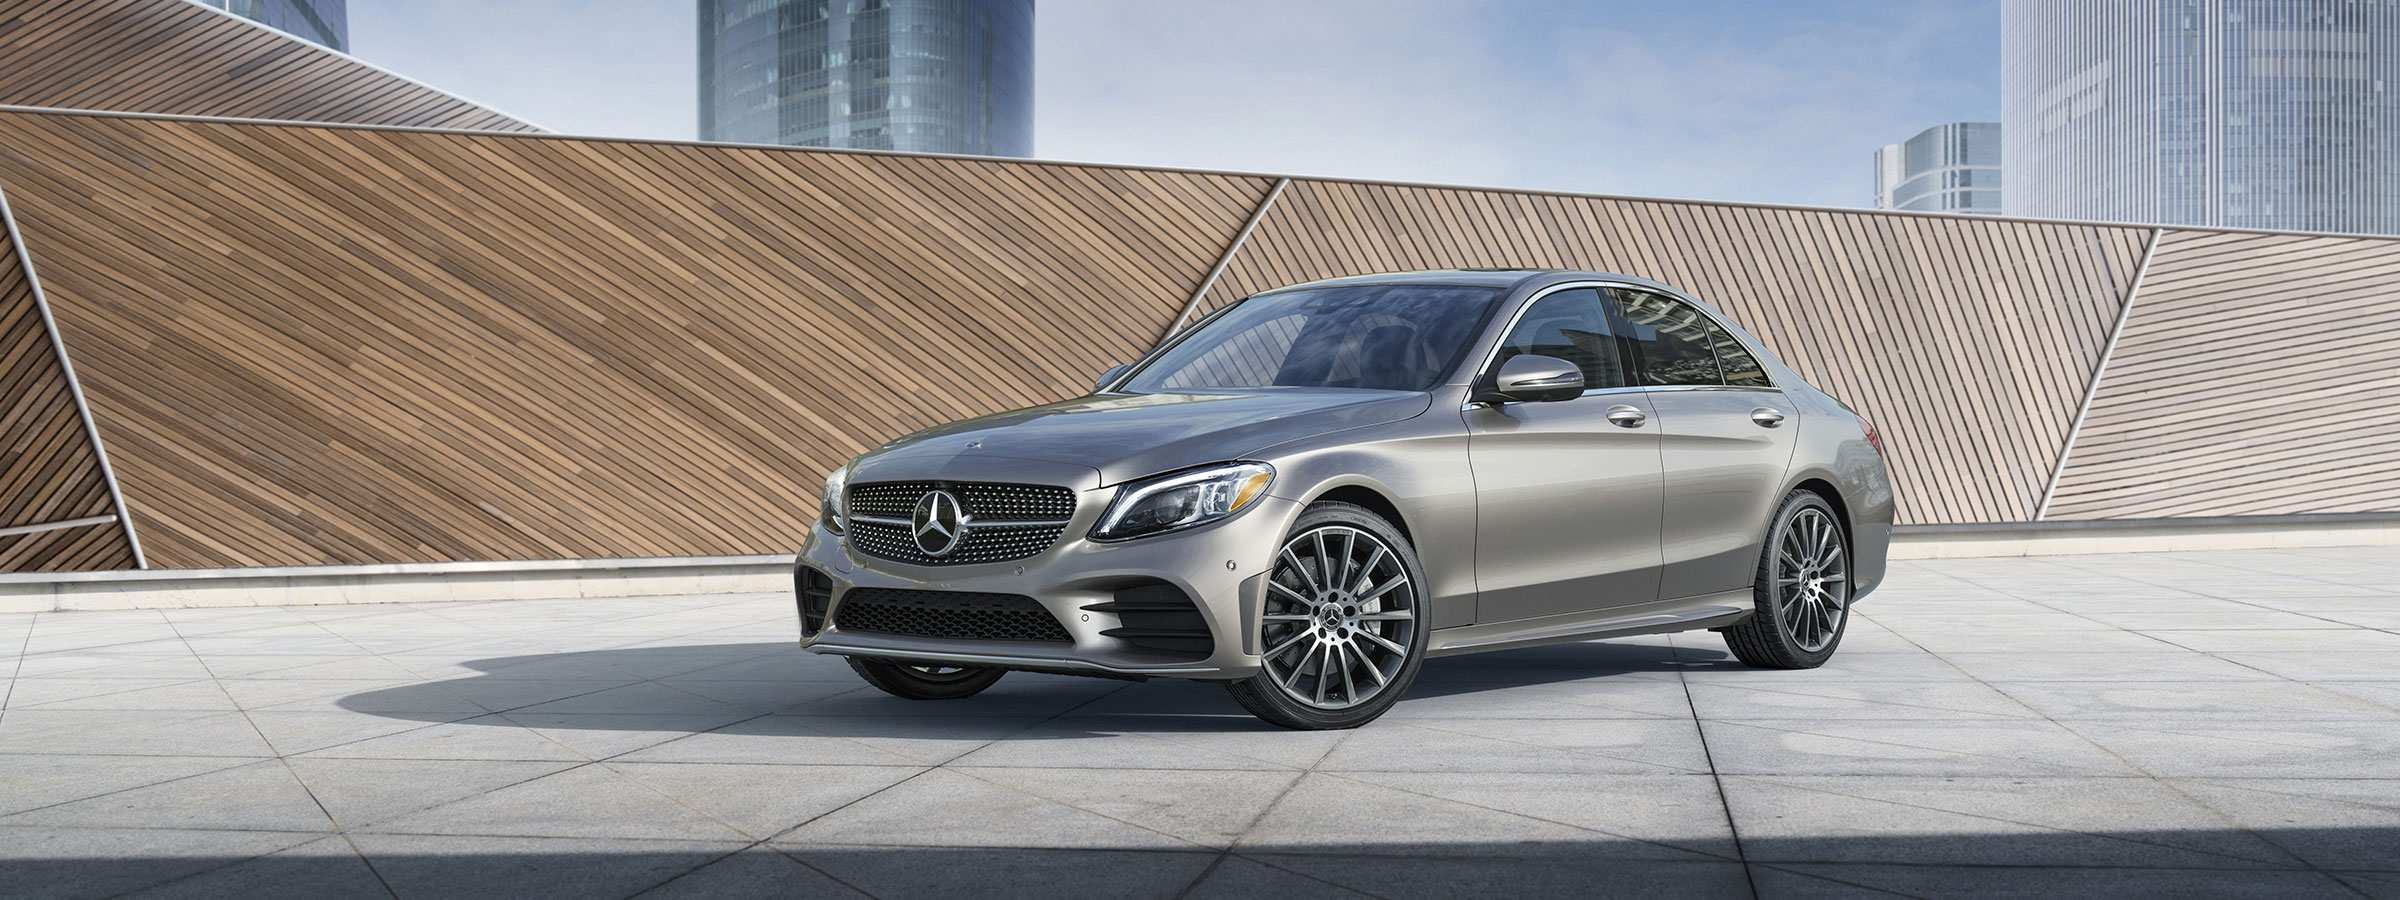 58 The 2019 Mercedes Benz C Class Engine for 2019 Mercedes Benz C Class